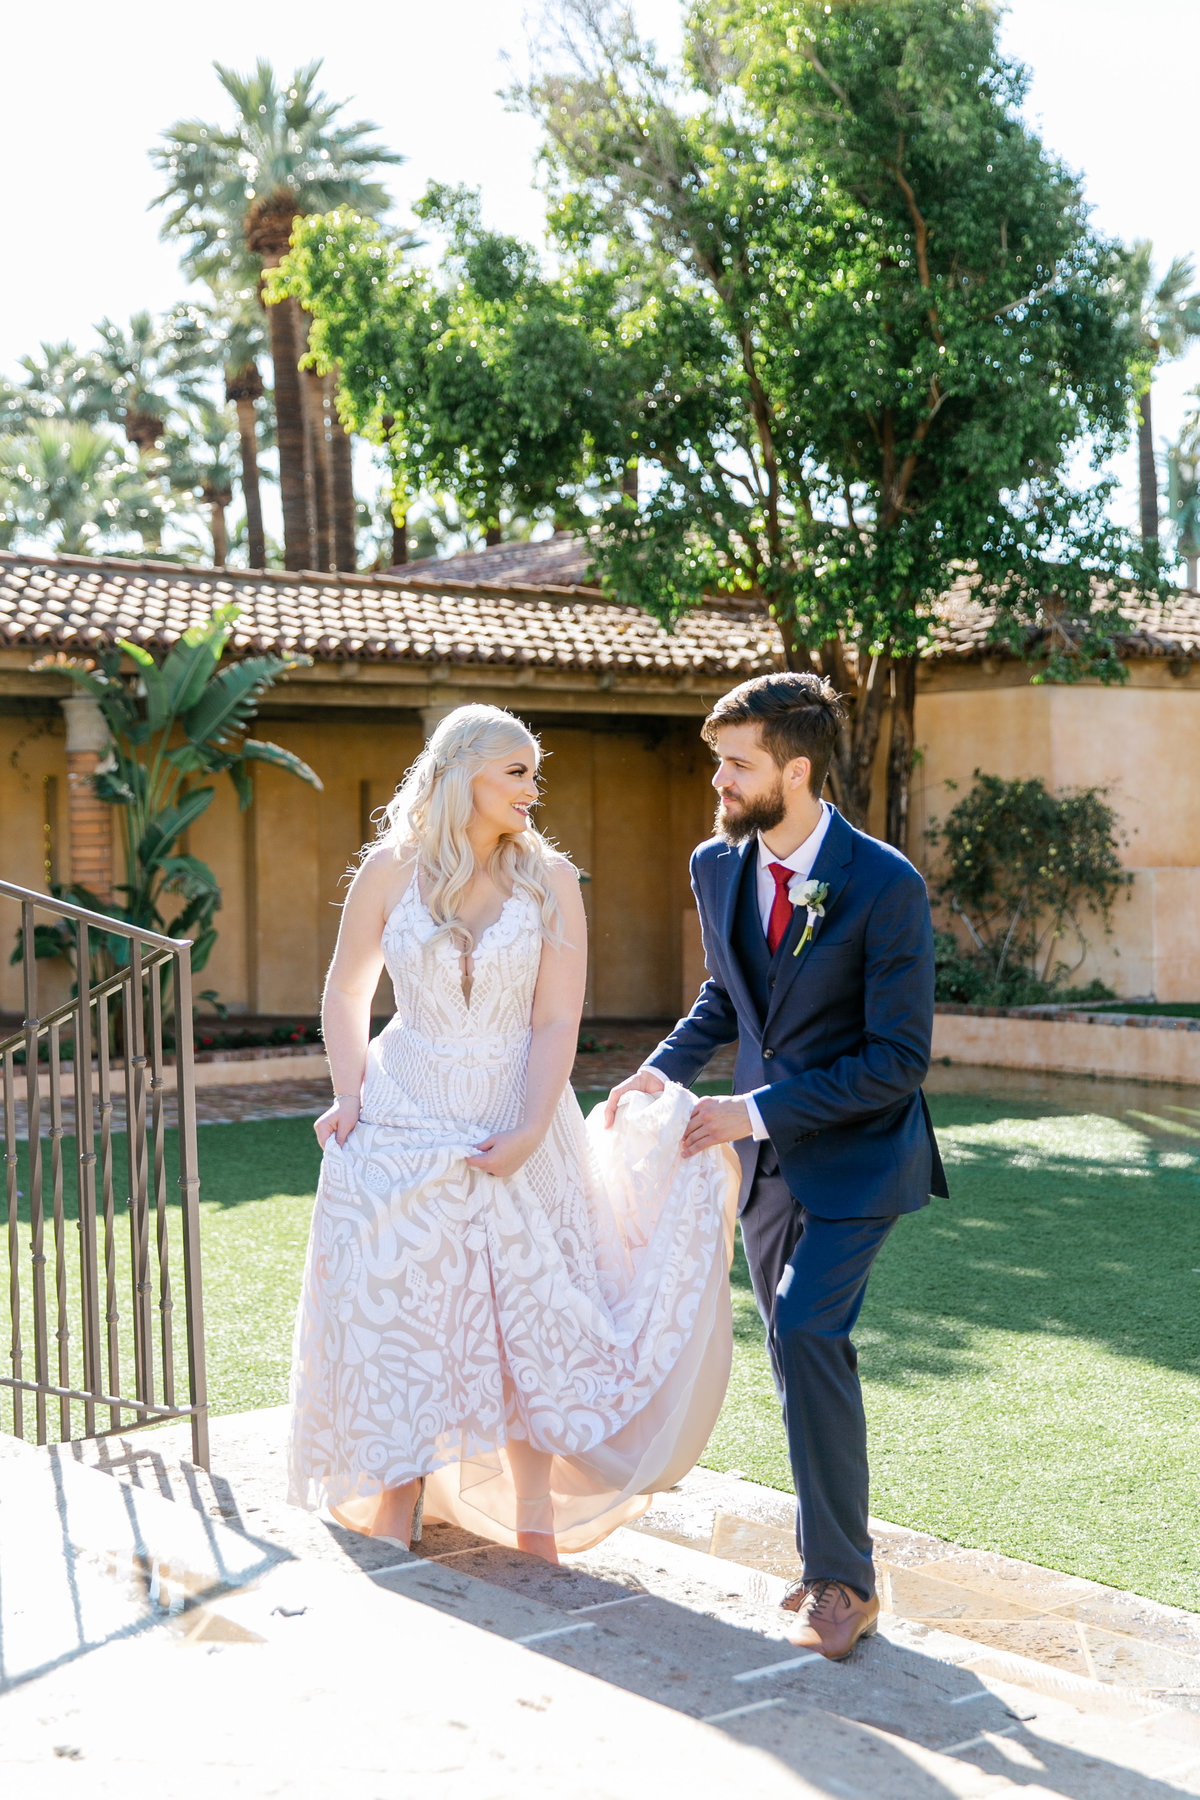 Karlie Colleen Photography - The Royal Palms Wedding - Some Like It Classic - Alex & Sam-175